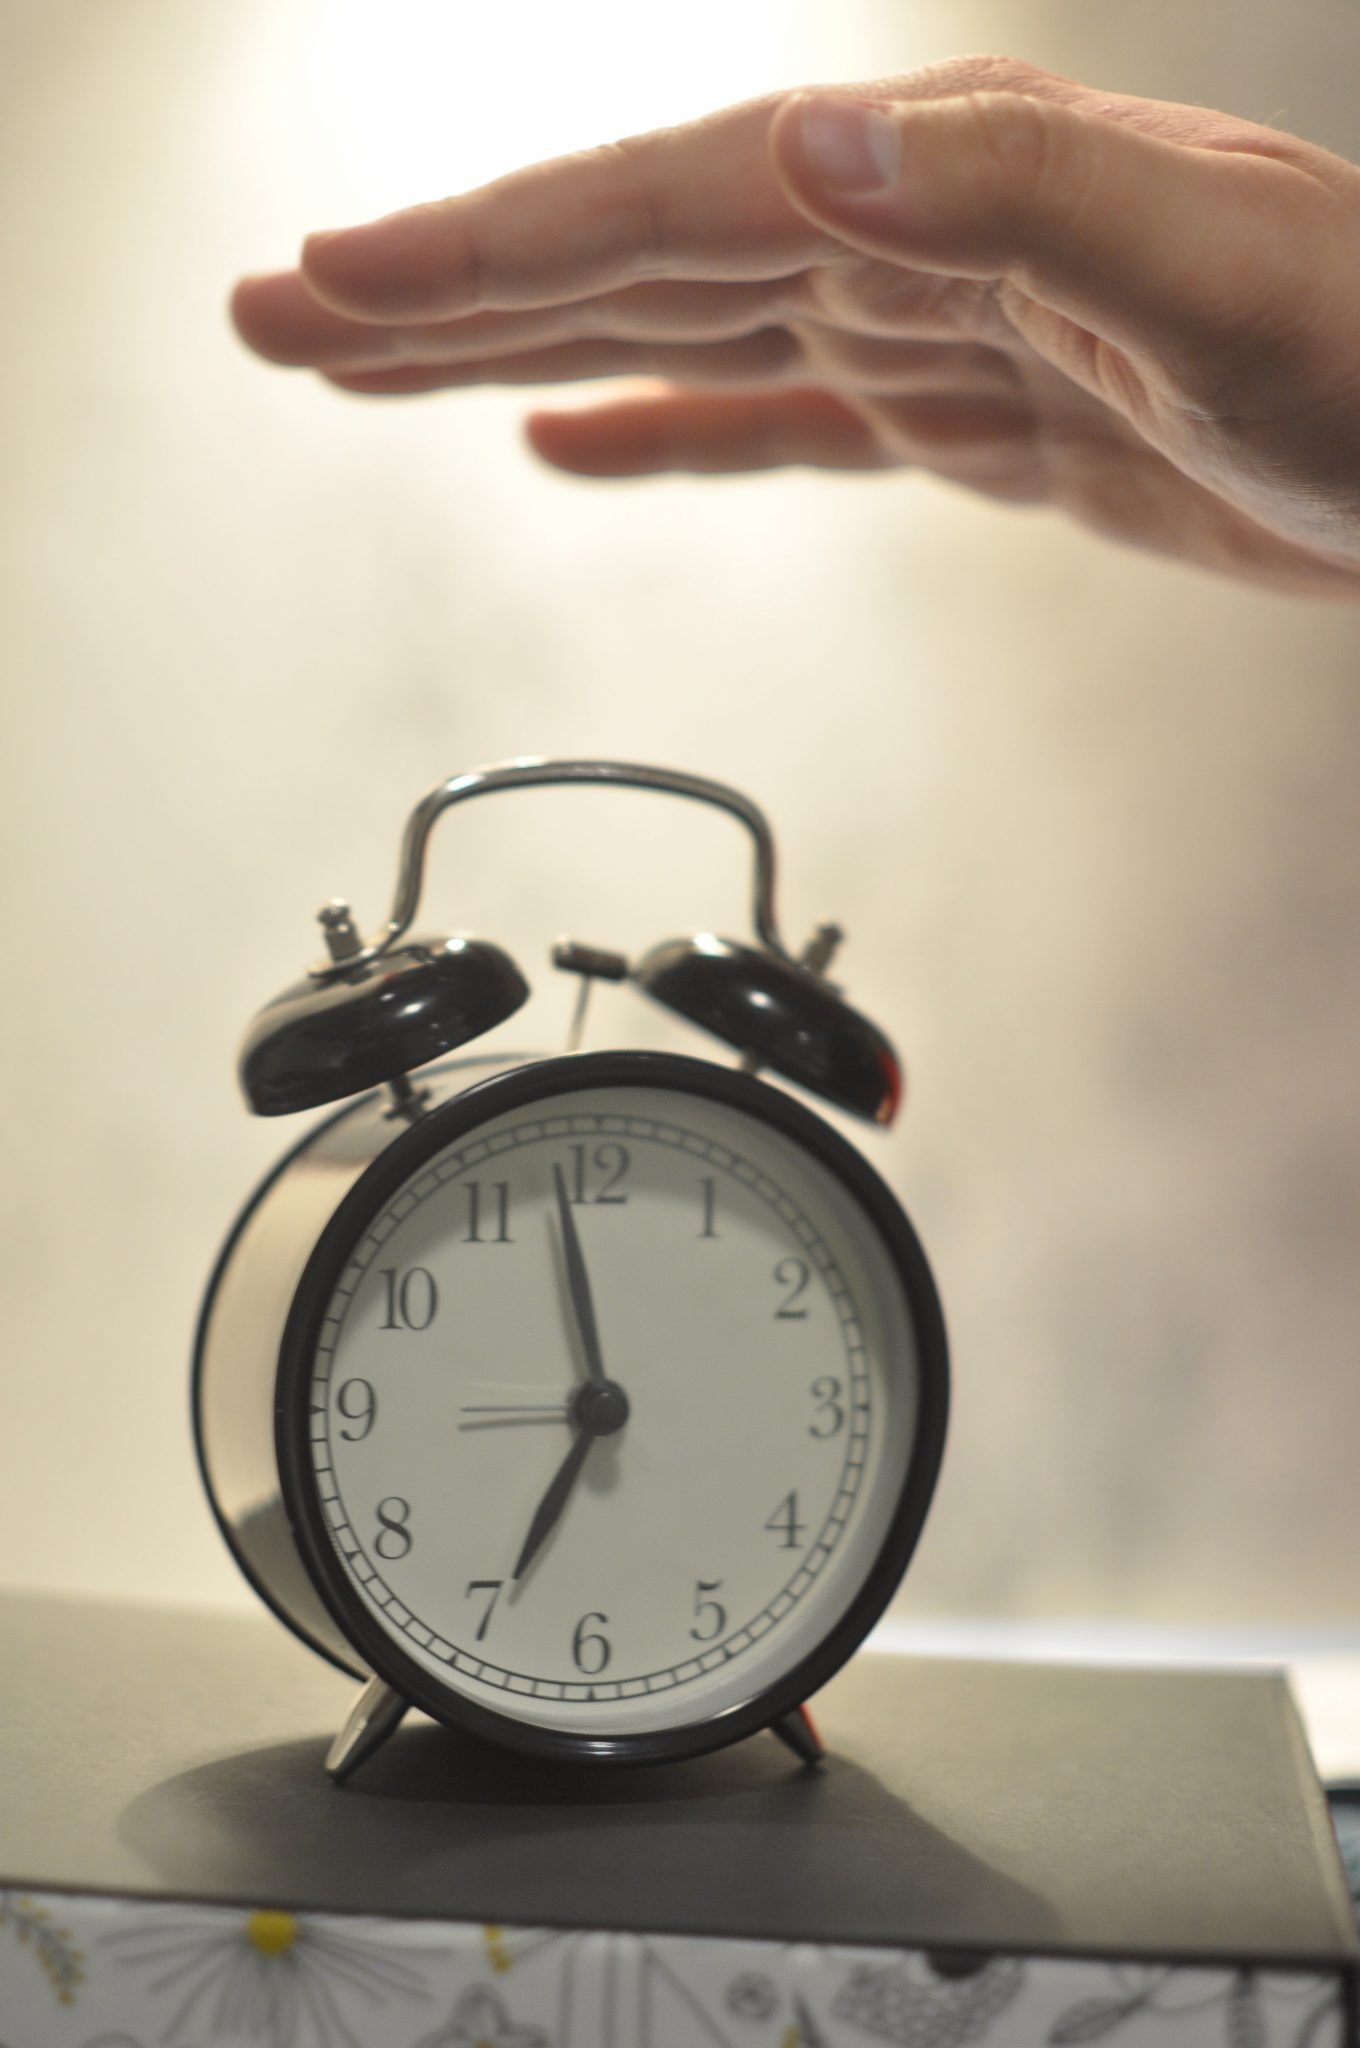 A hand turning off an alarm clock.